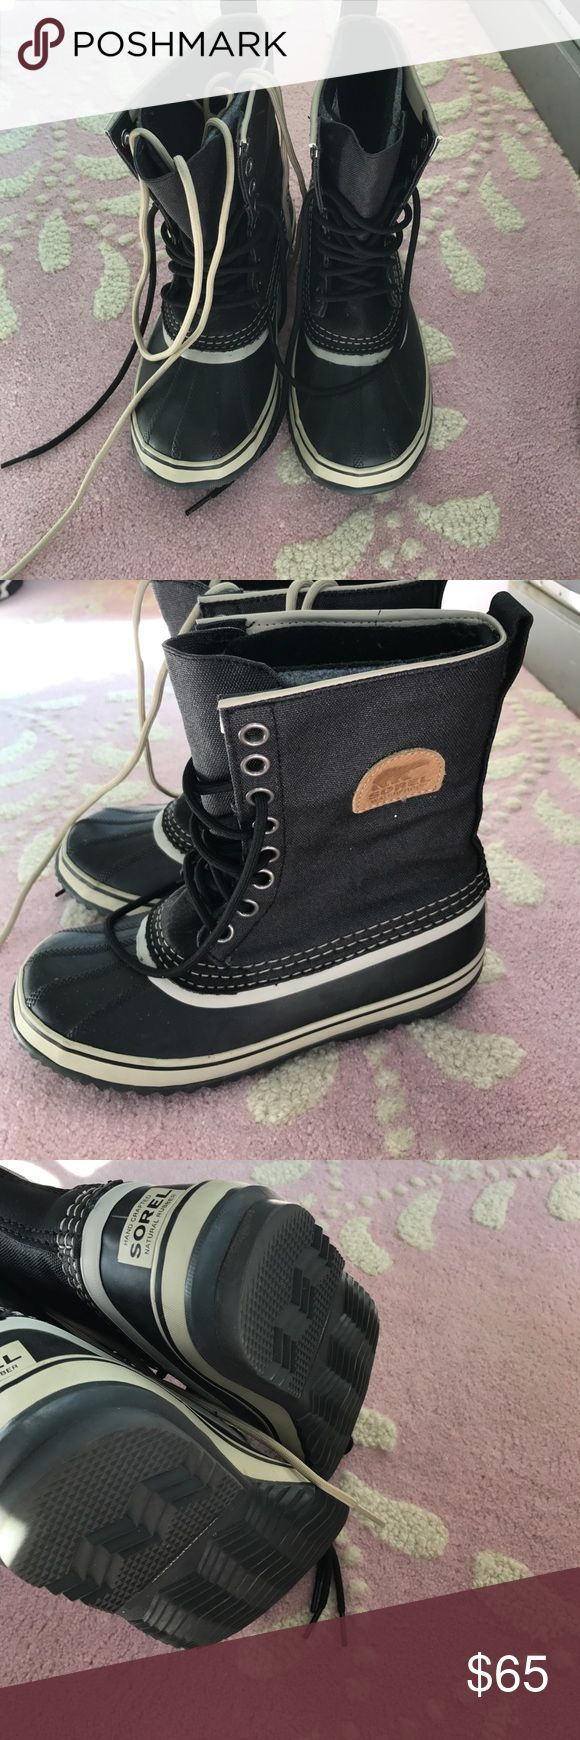 Sorel Winter Boots Black Sorel Winter Boots with wool liner! Worn twice! Includes both Black and Cream Laces! Sorel Shoes Winter & Rain Boots